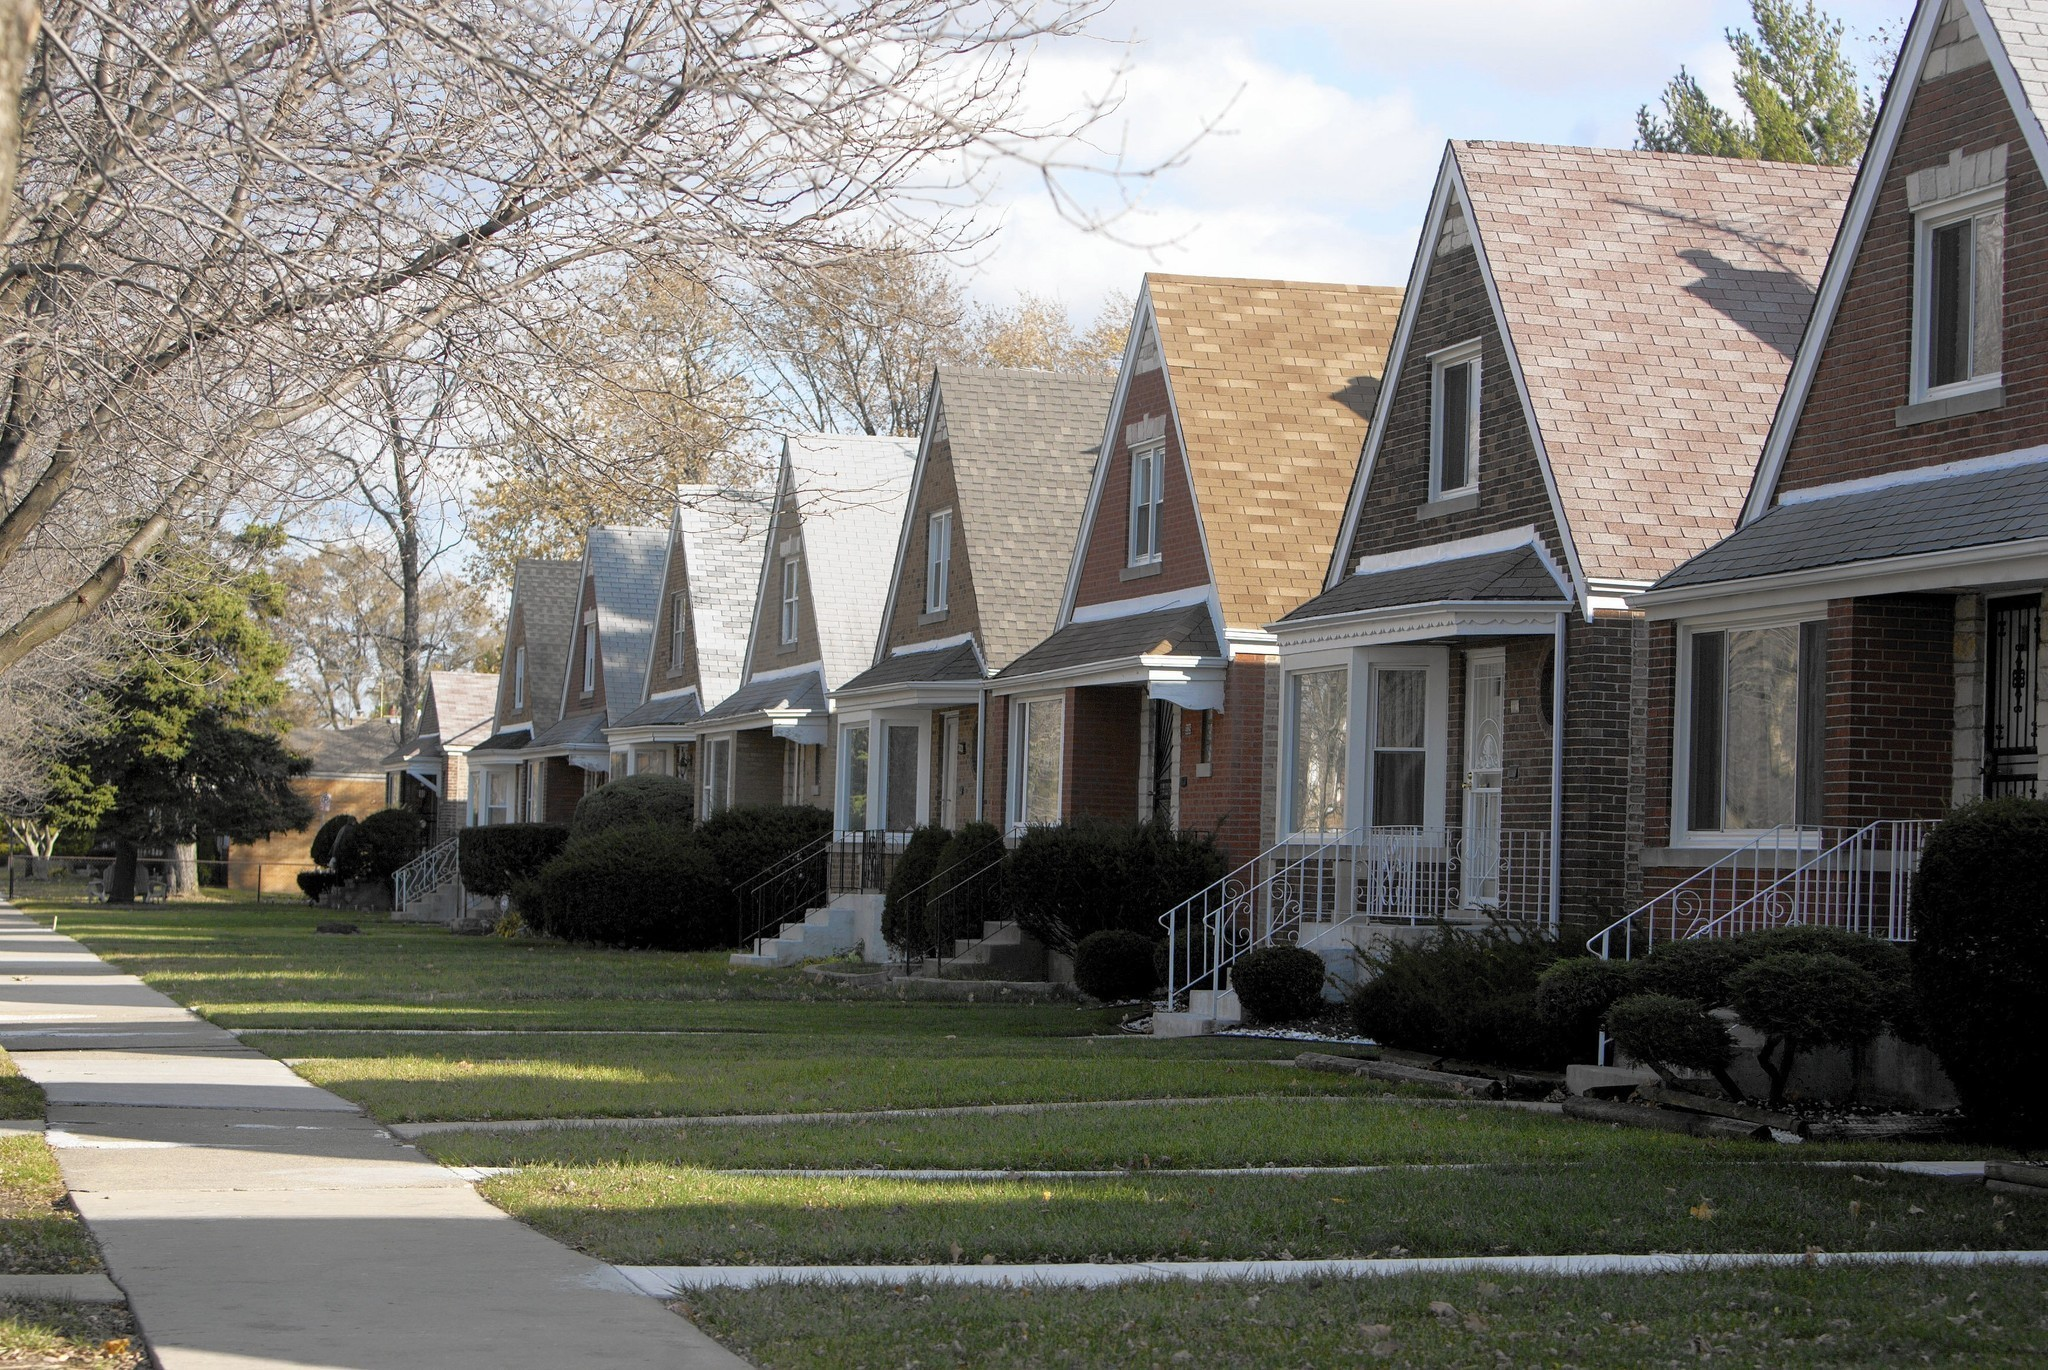 Historic Chicago Bungalow Association To Present Free